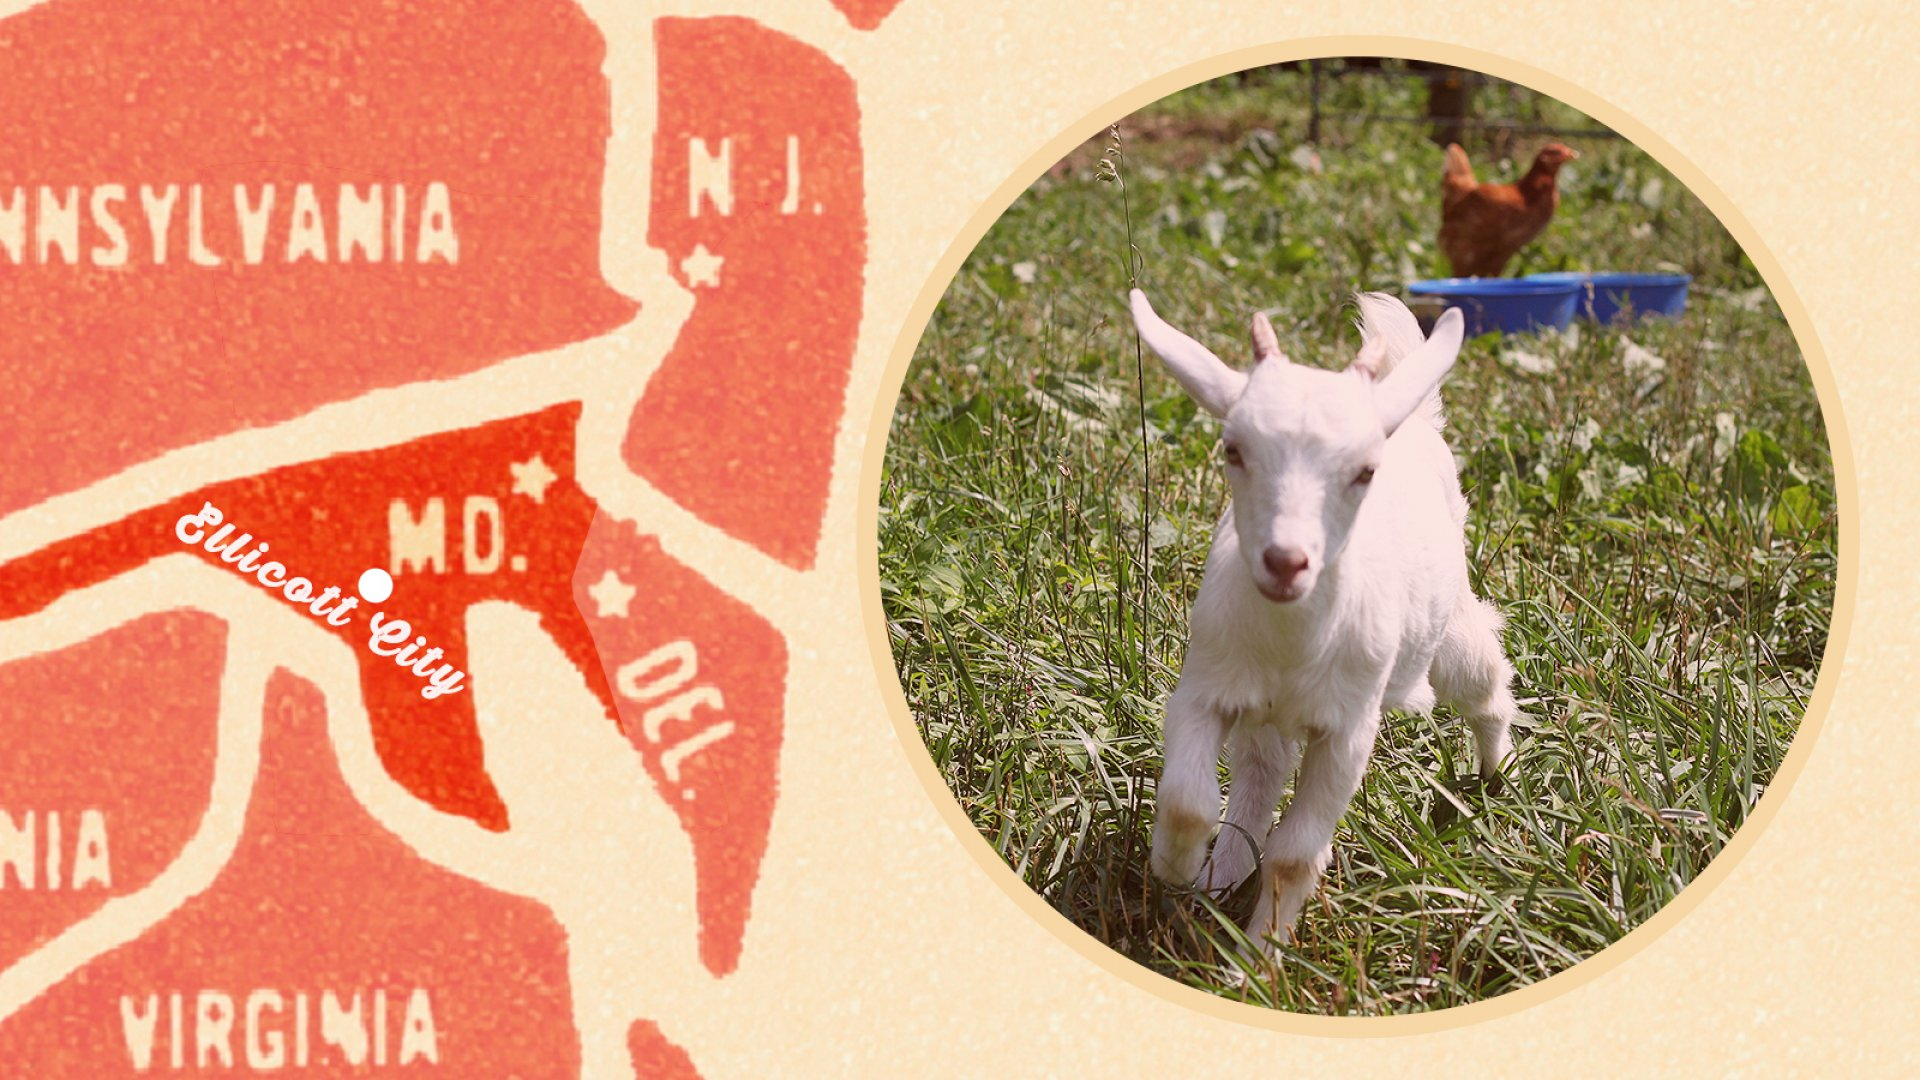 Enchanted Forest, Pygmy Goats, Cinderella's Coach: Meet the Quirkiest Family Business in Maryland